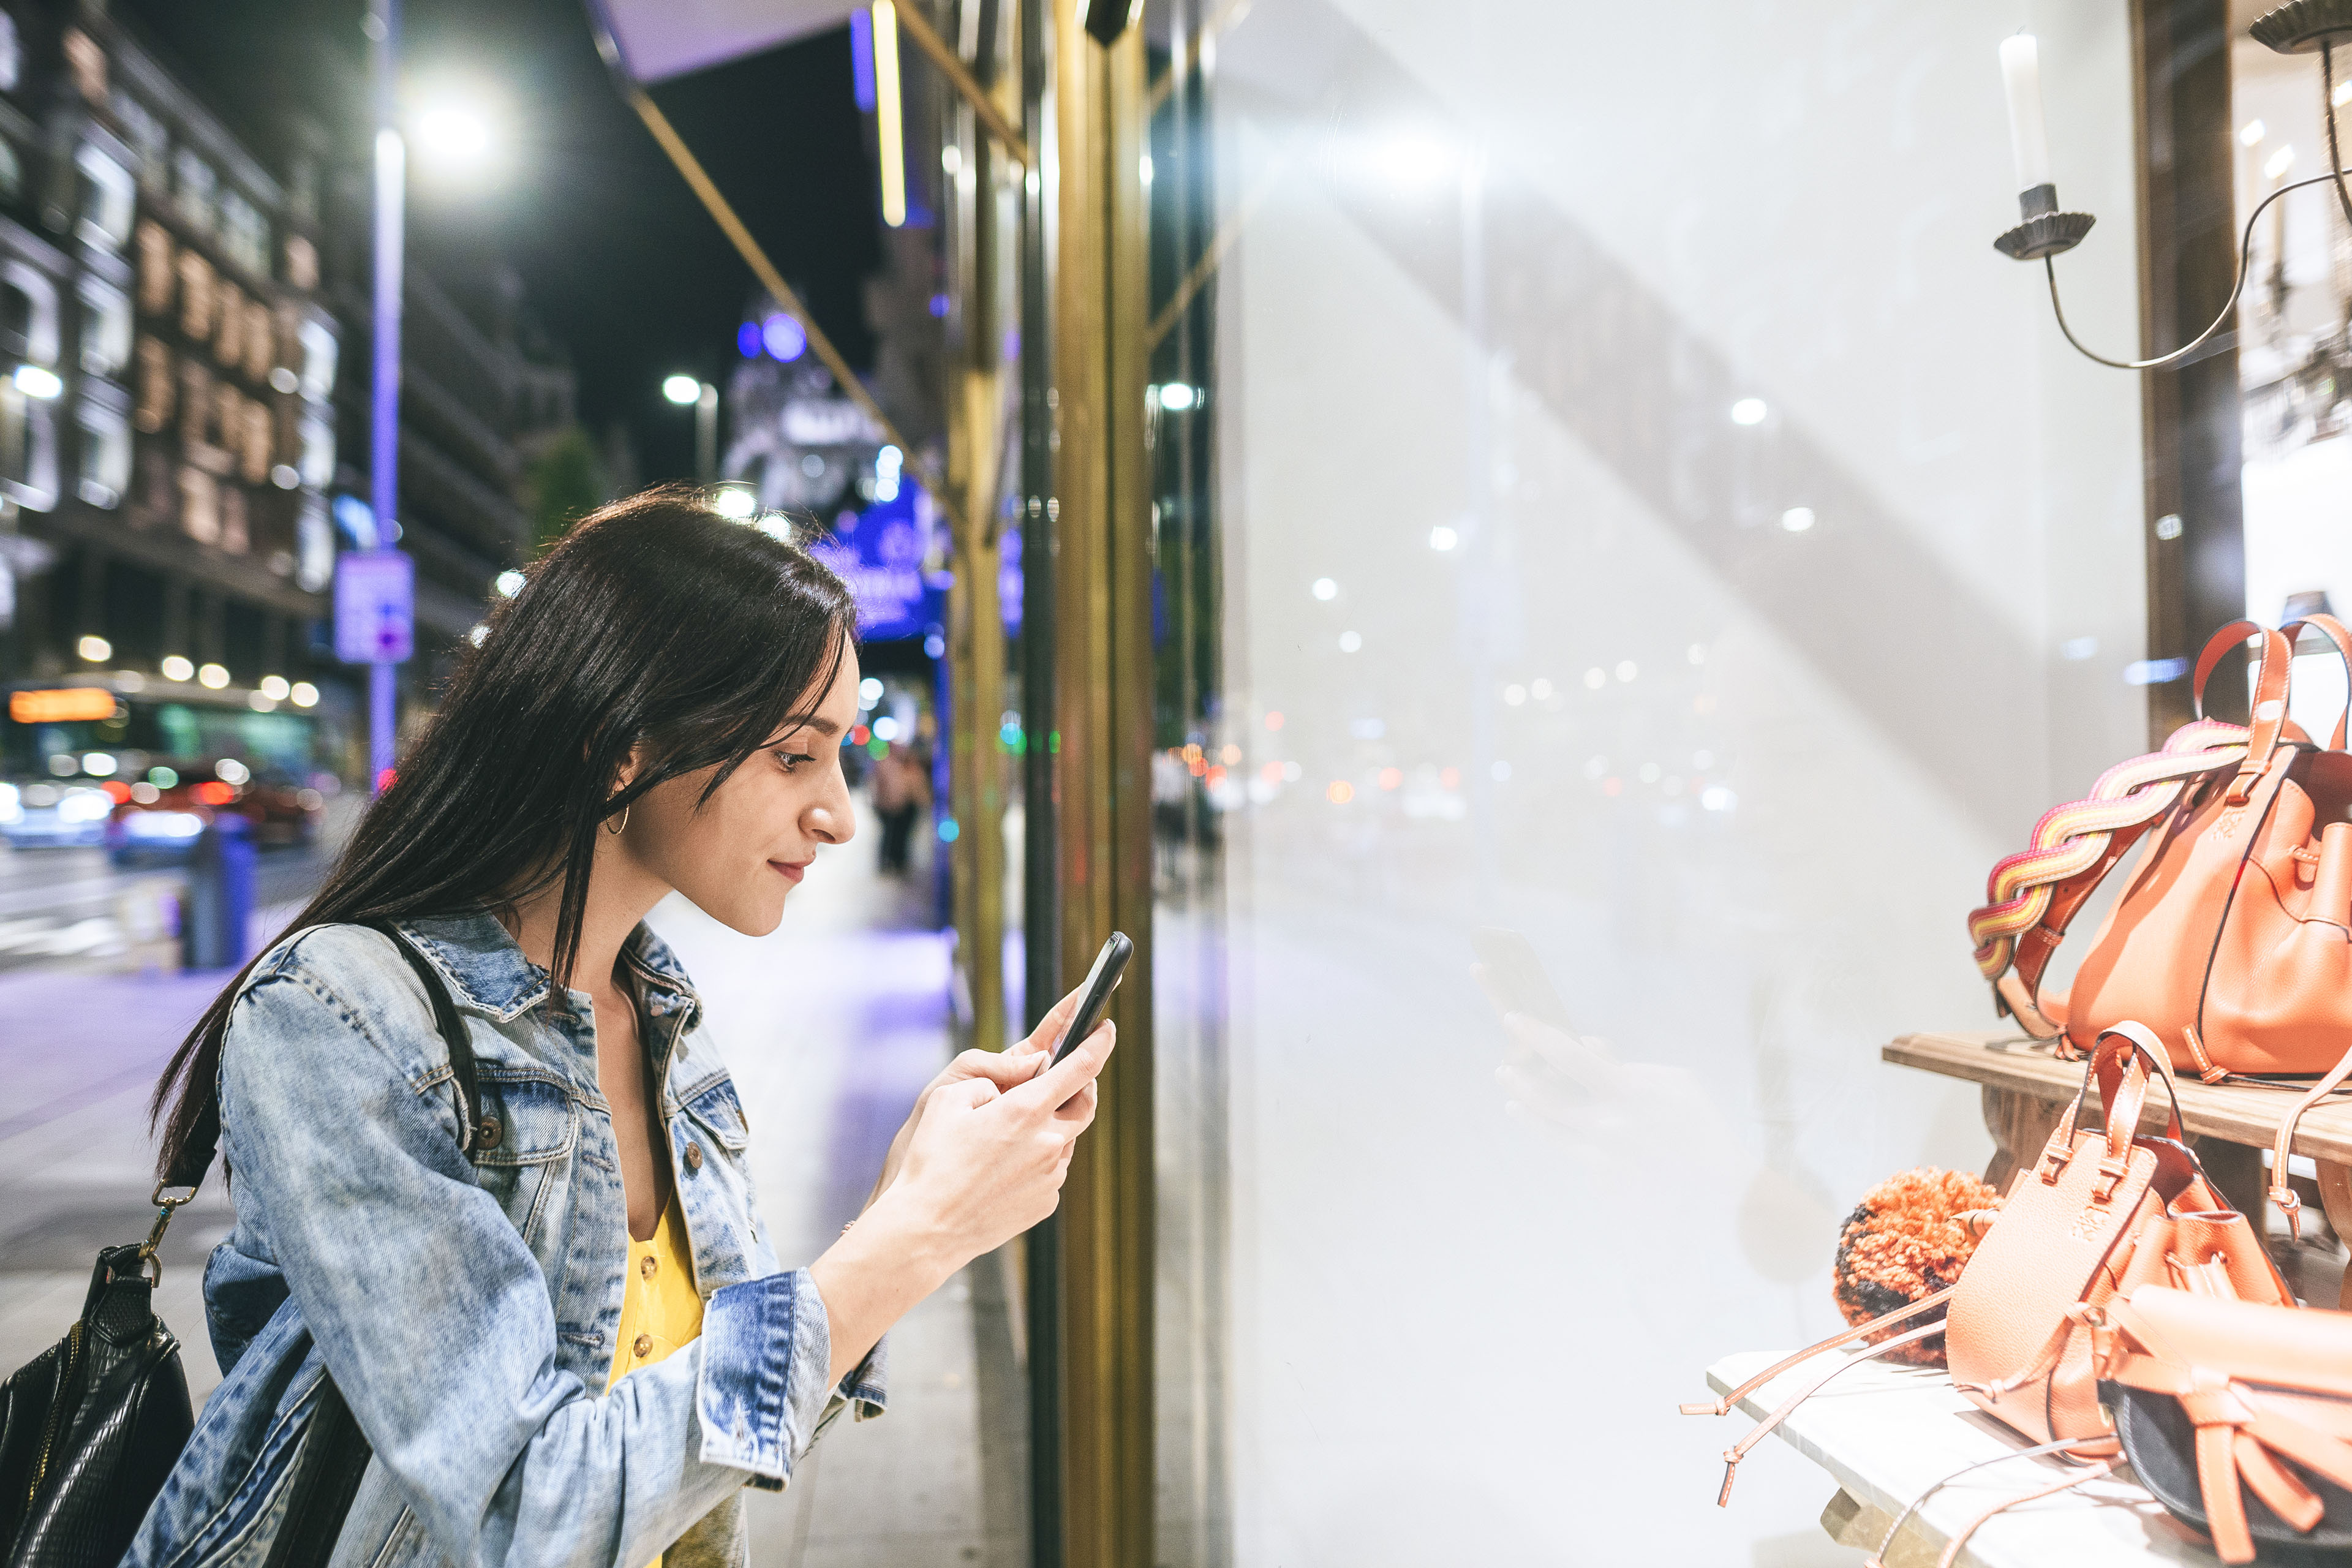 Woman taking a picture to shop window at night